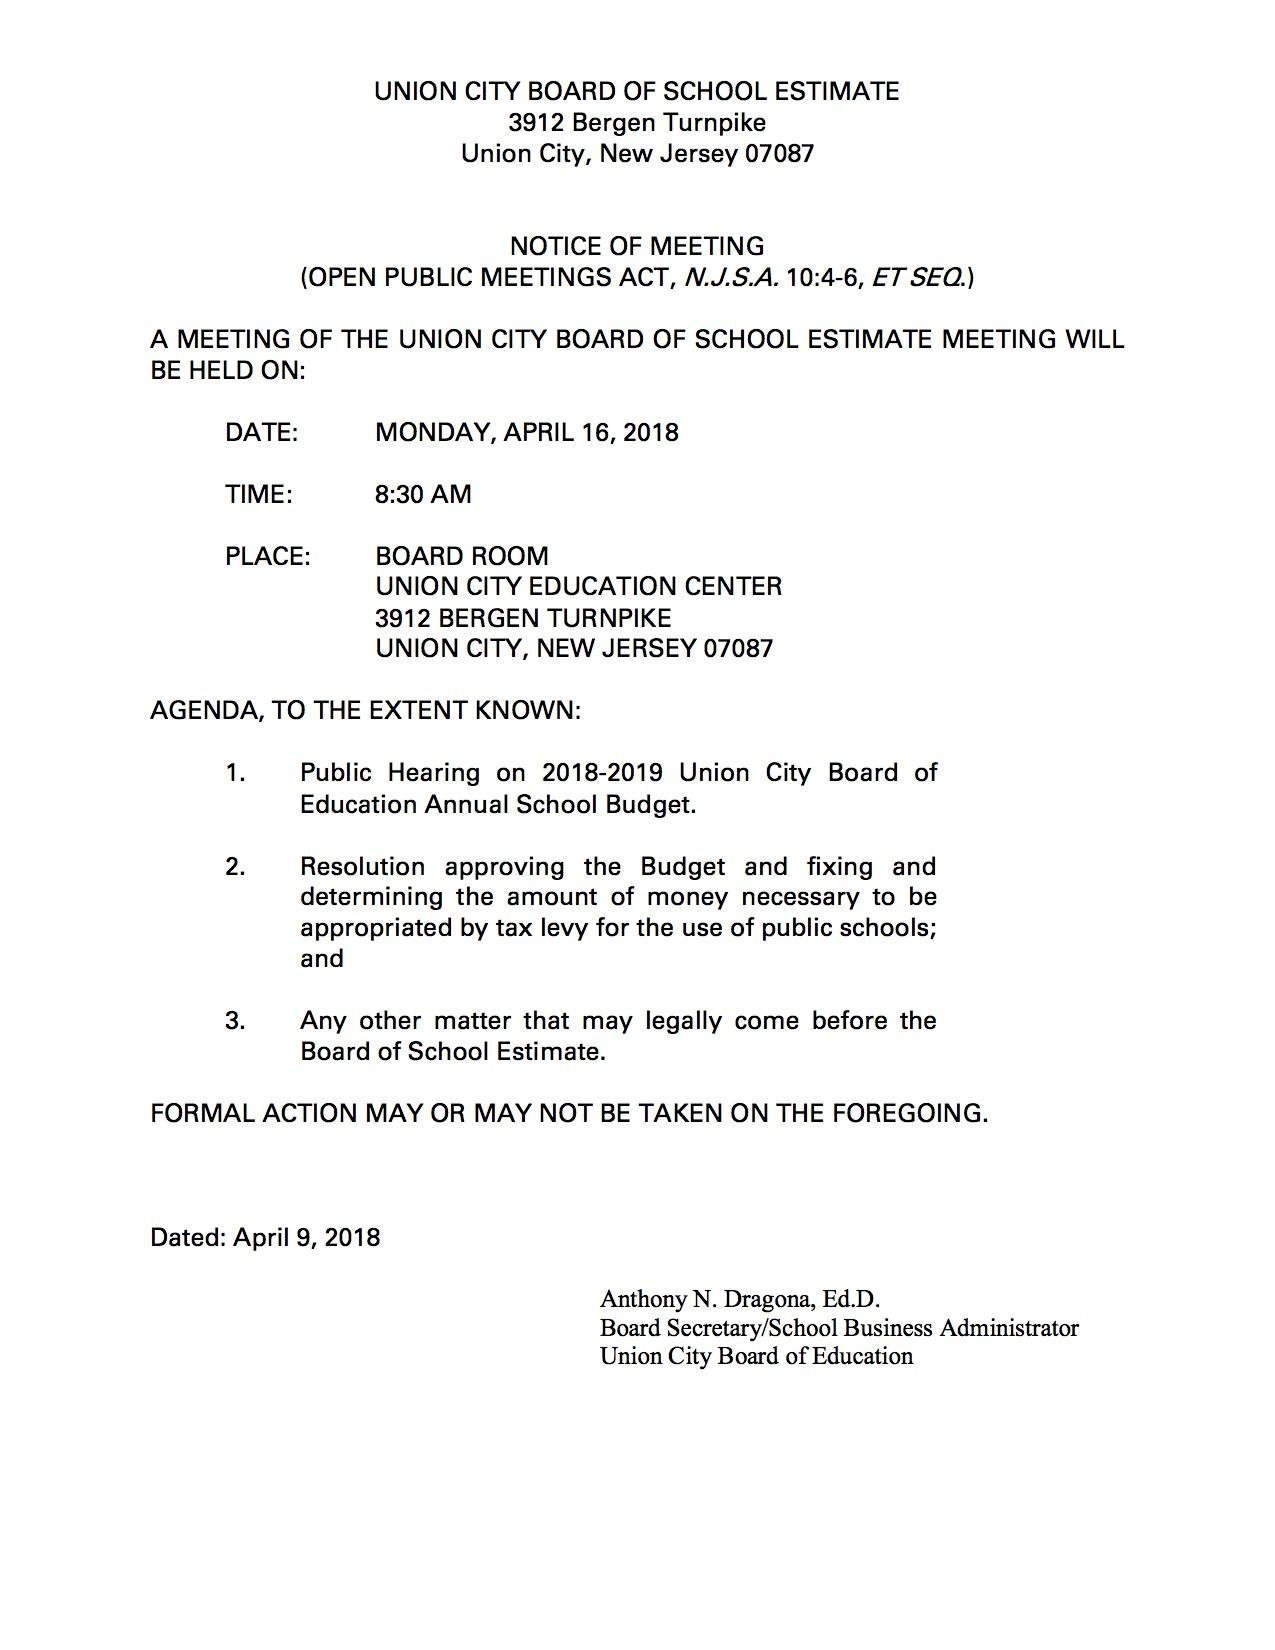 Board of School estimate april 16th meeting